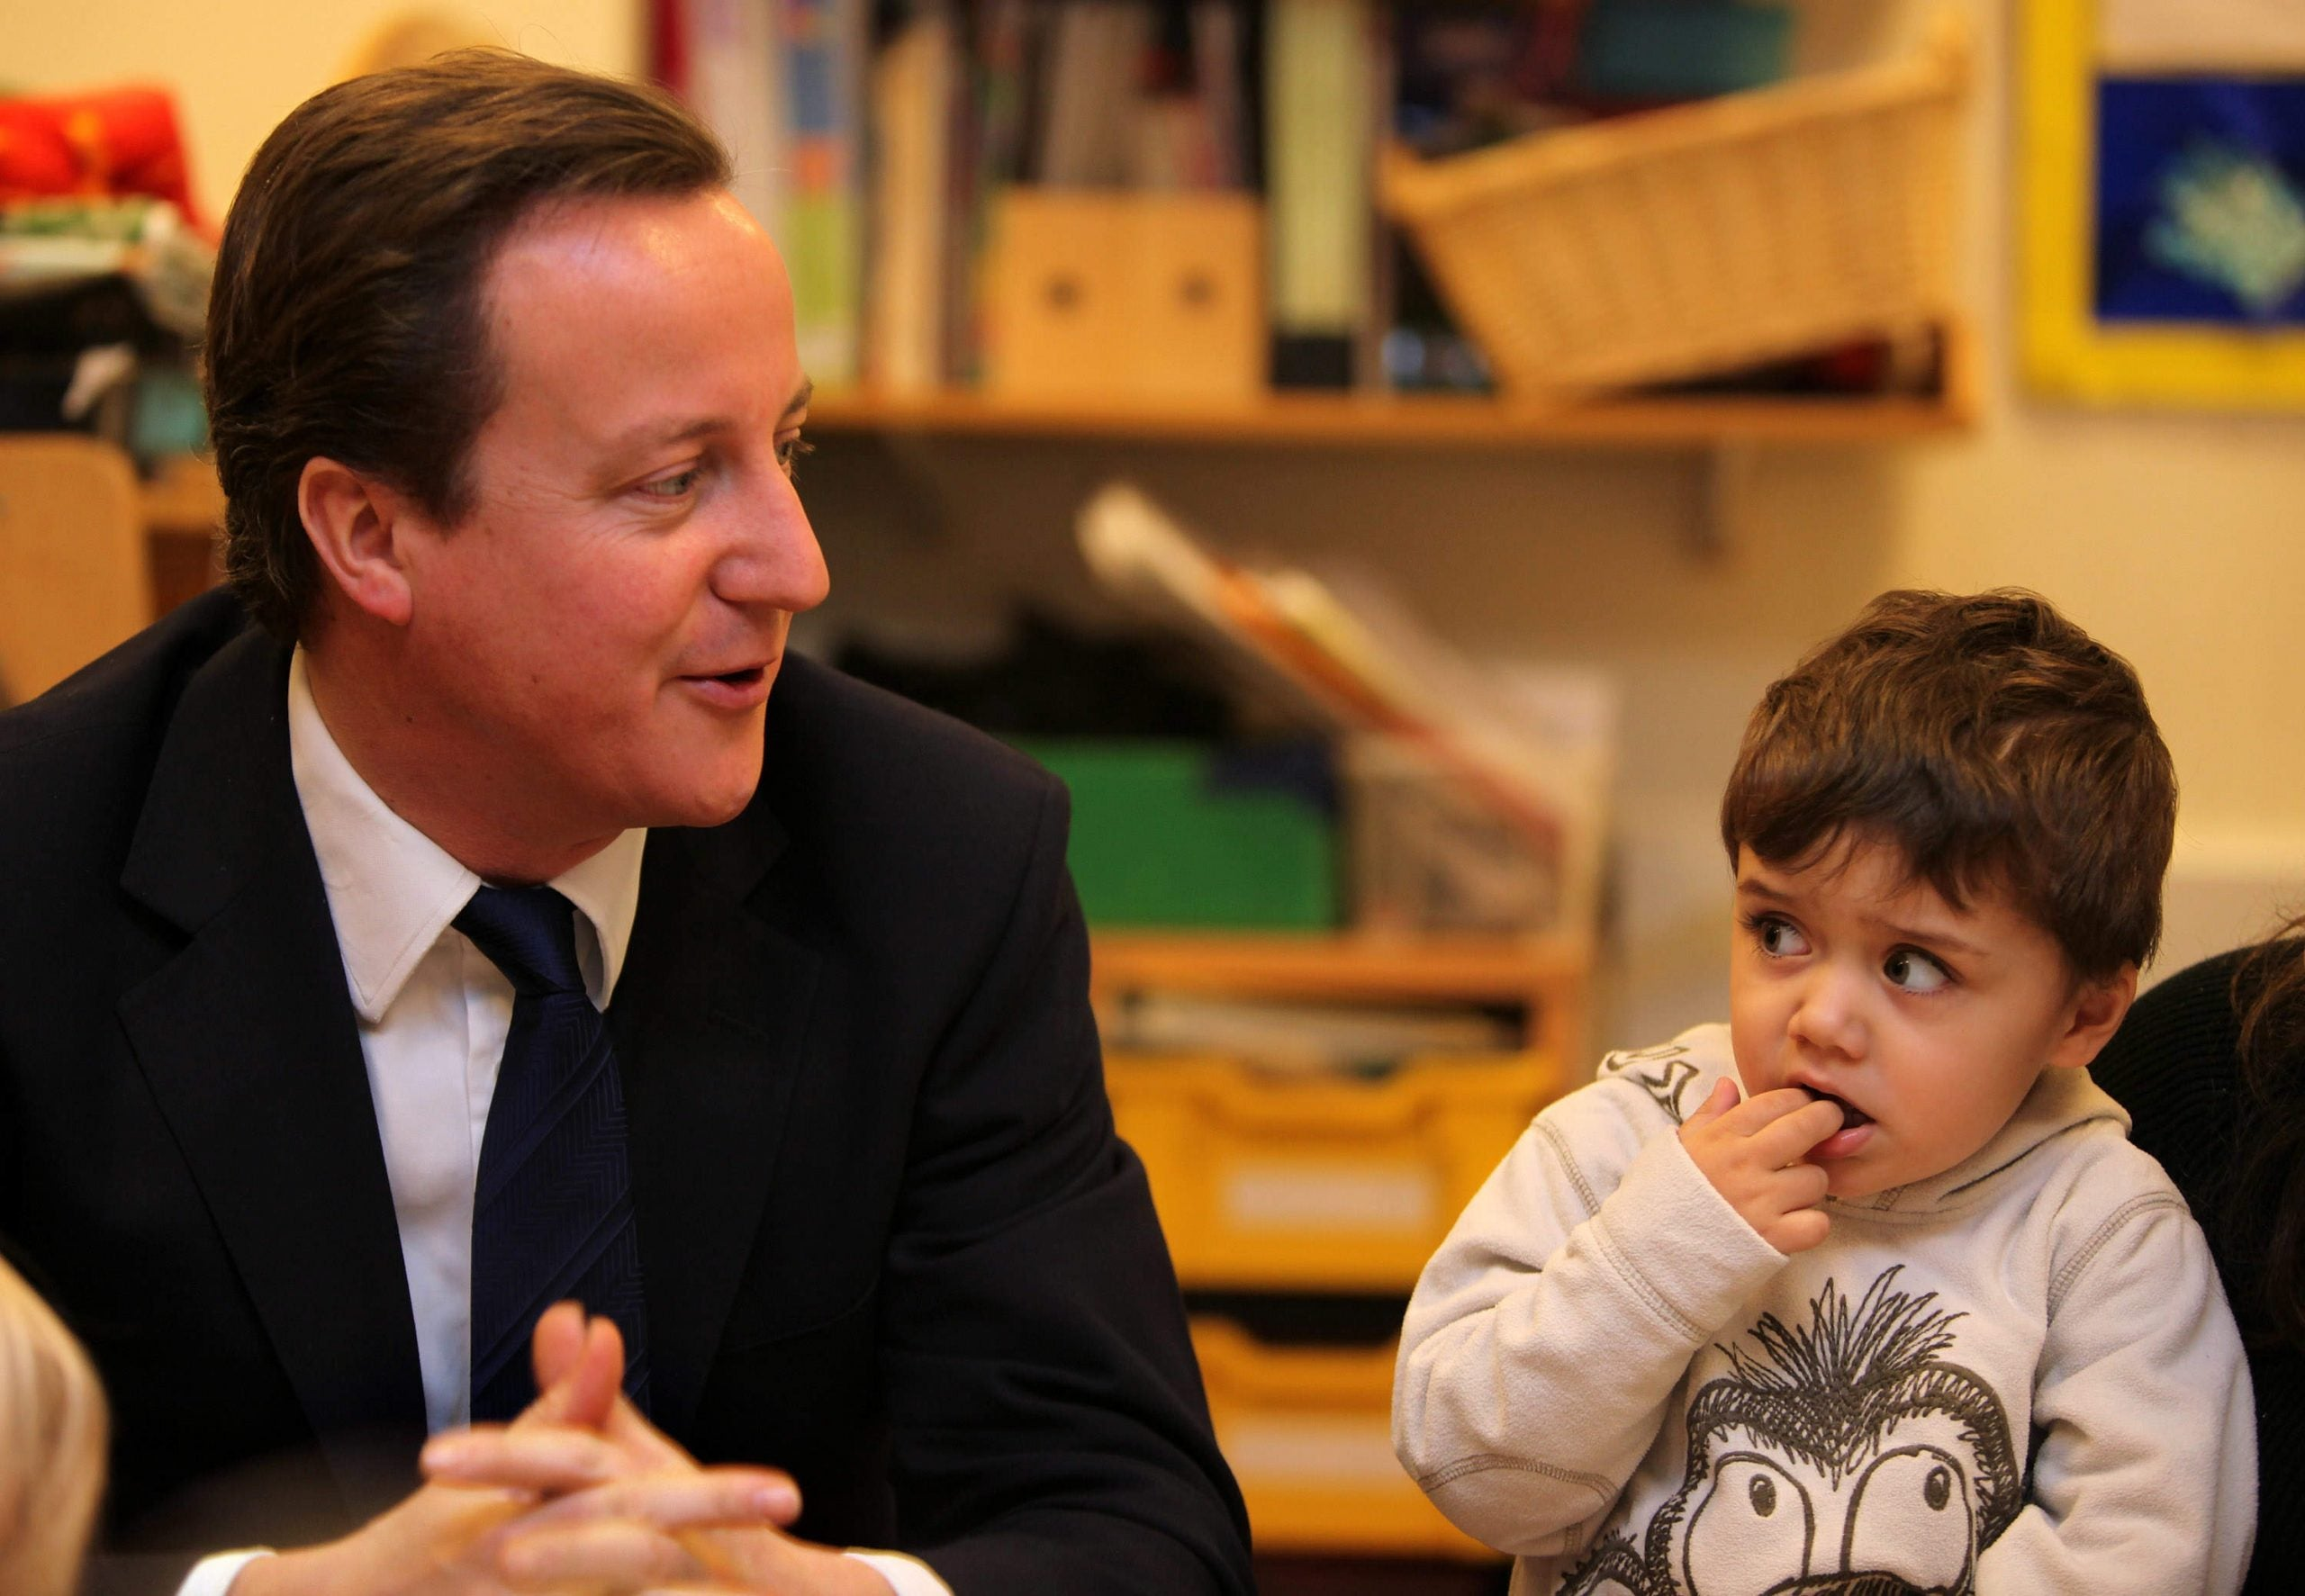 We need to end the childcare crunch on our families and the economy